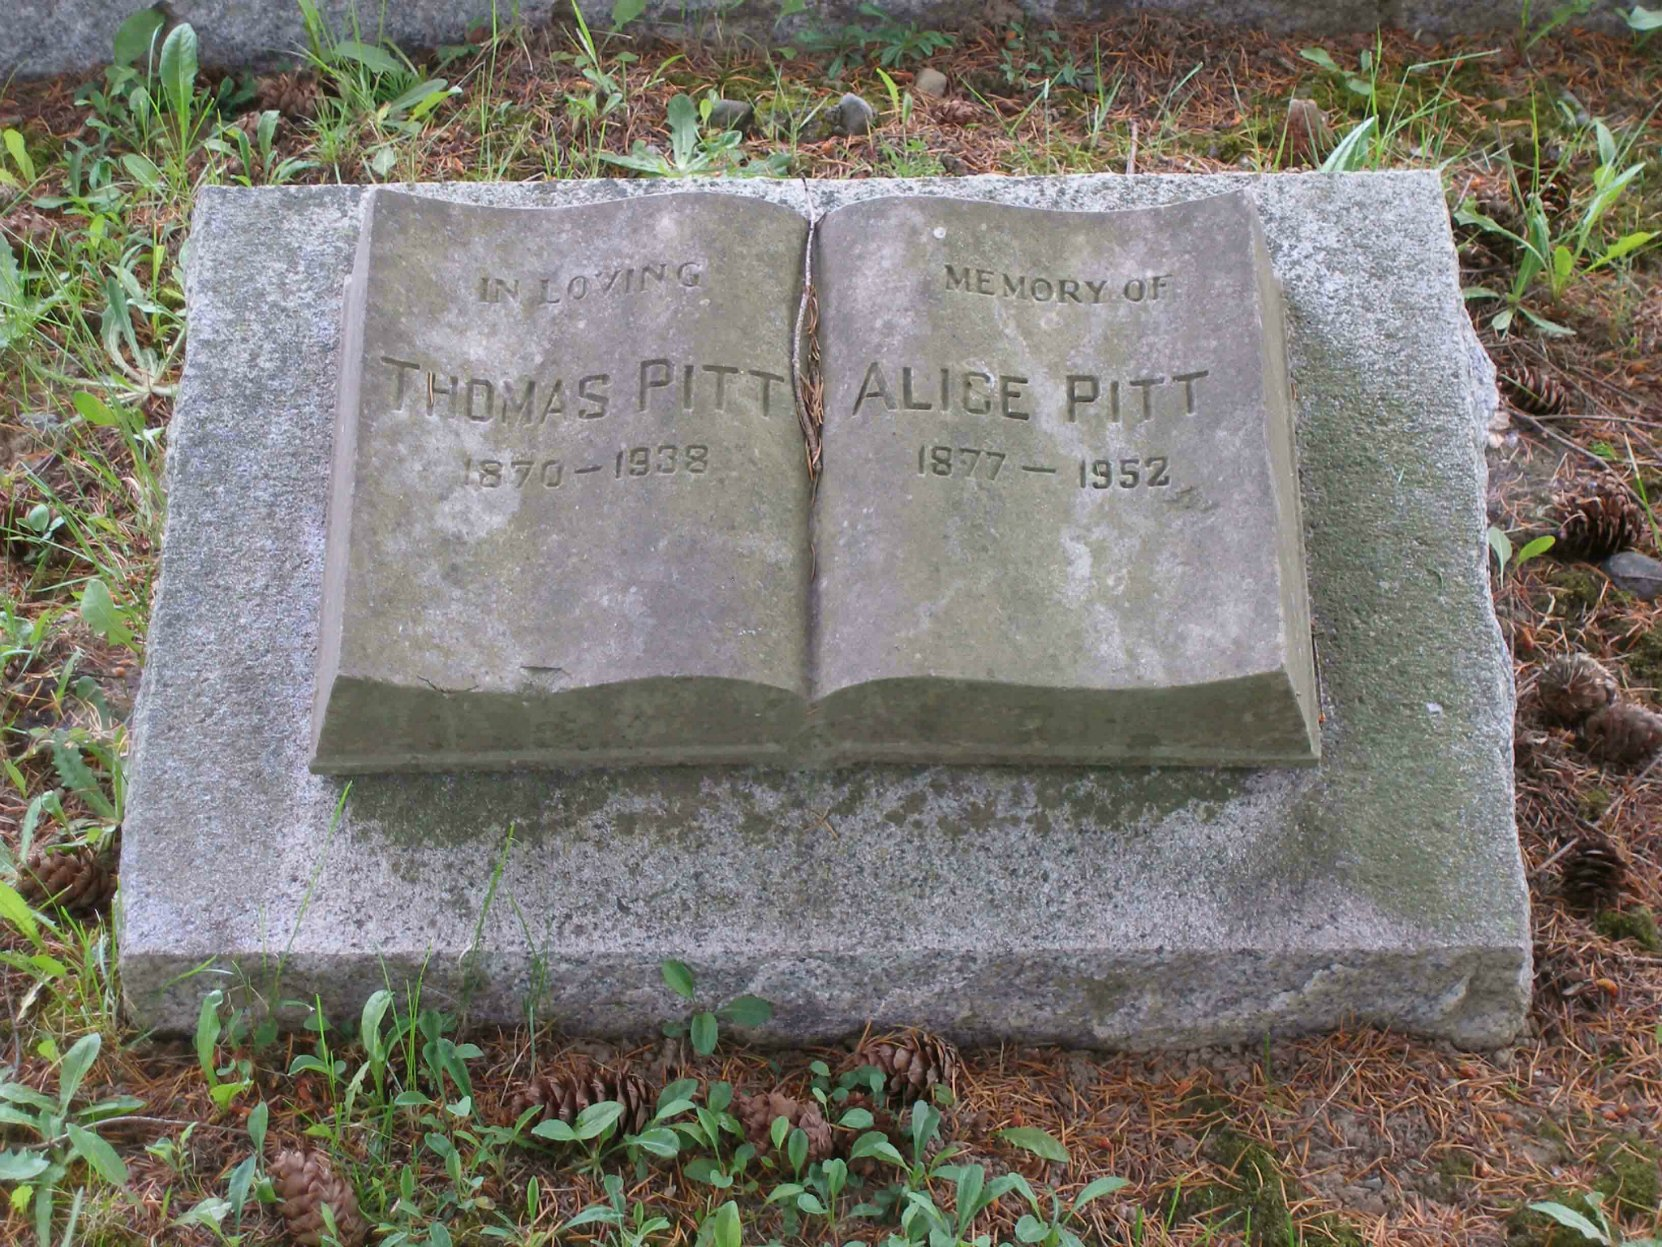 Thomas and Alice Pitt grave marker, Mountain View Cemetery, North Cowichan